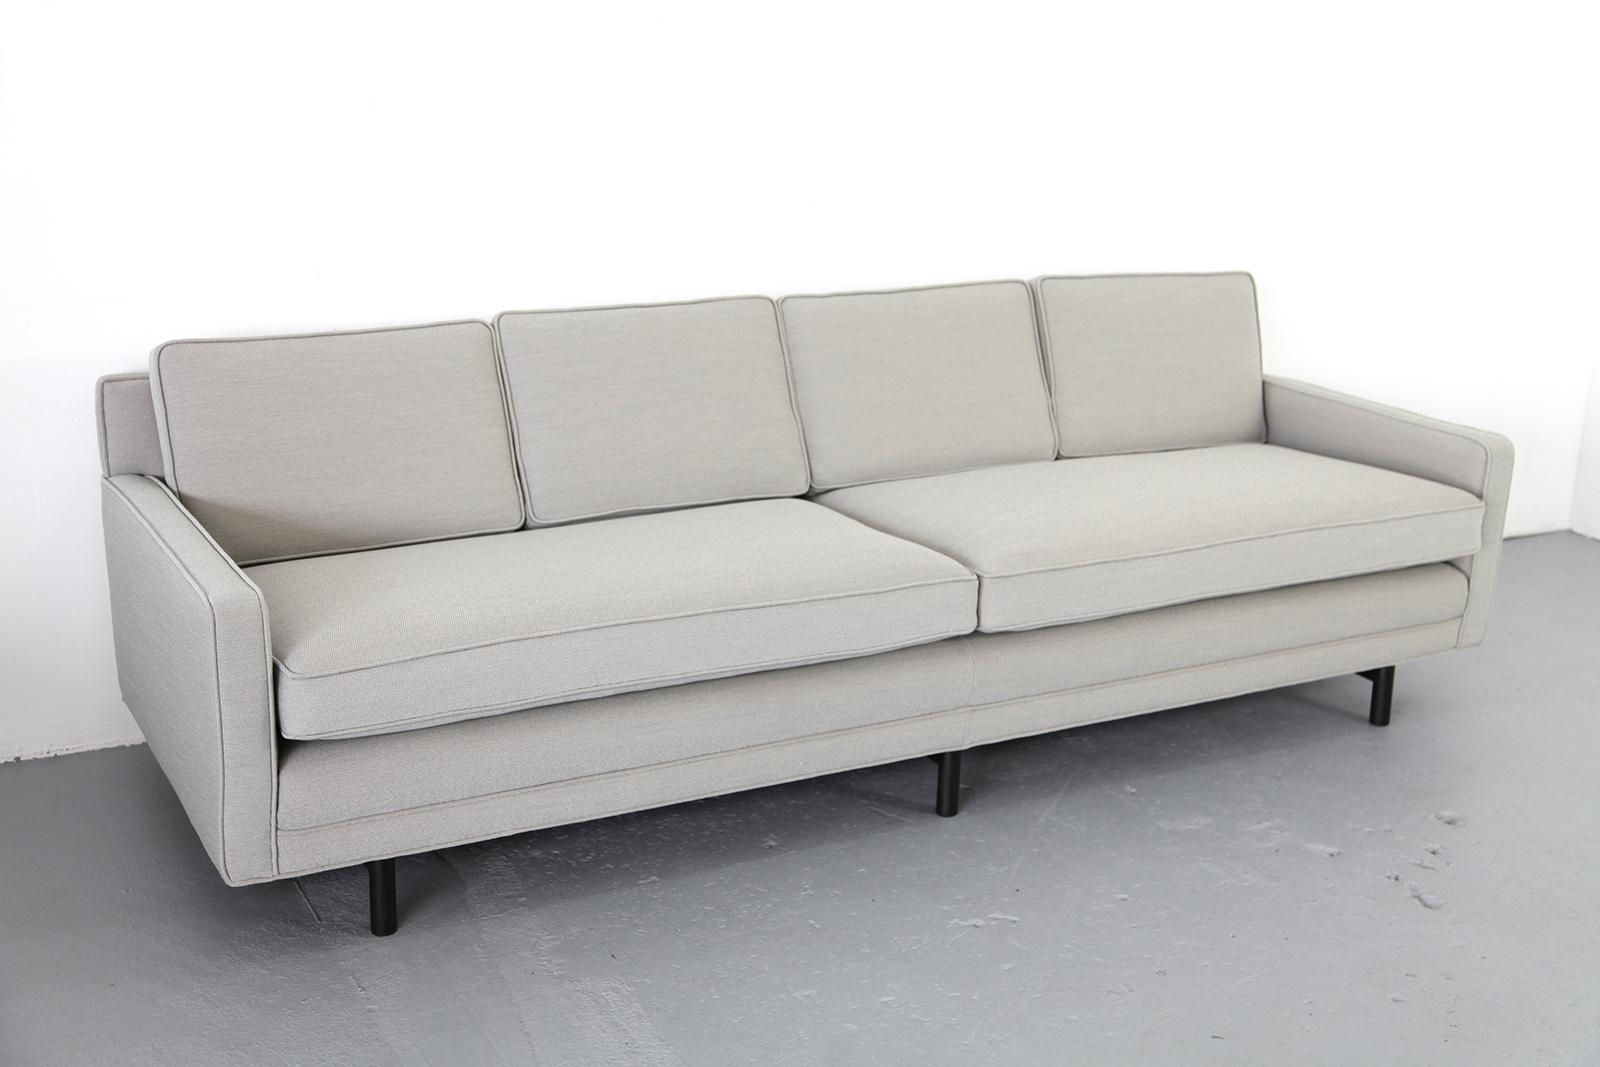 4 Seater Sofapaul Mccobb For Directional For Sale At Pamono With Regard To Four Seater Sofas (View 2 of 20)